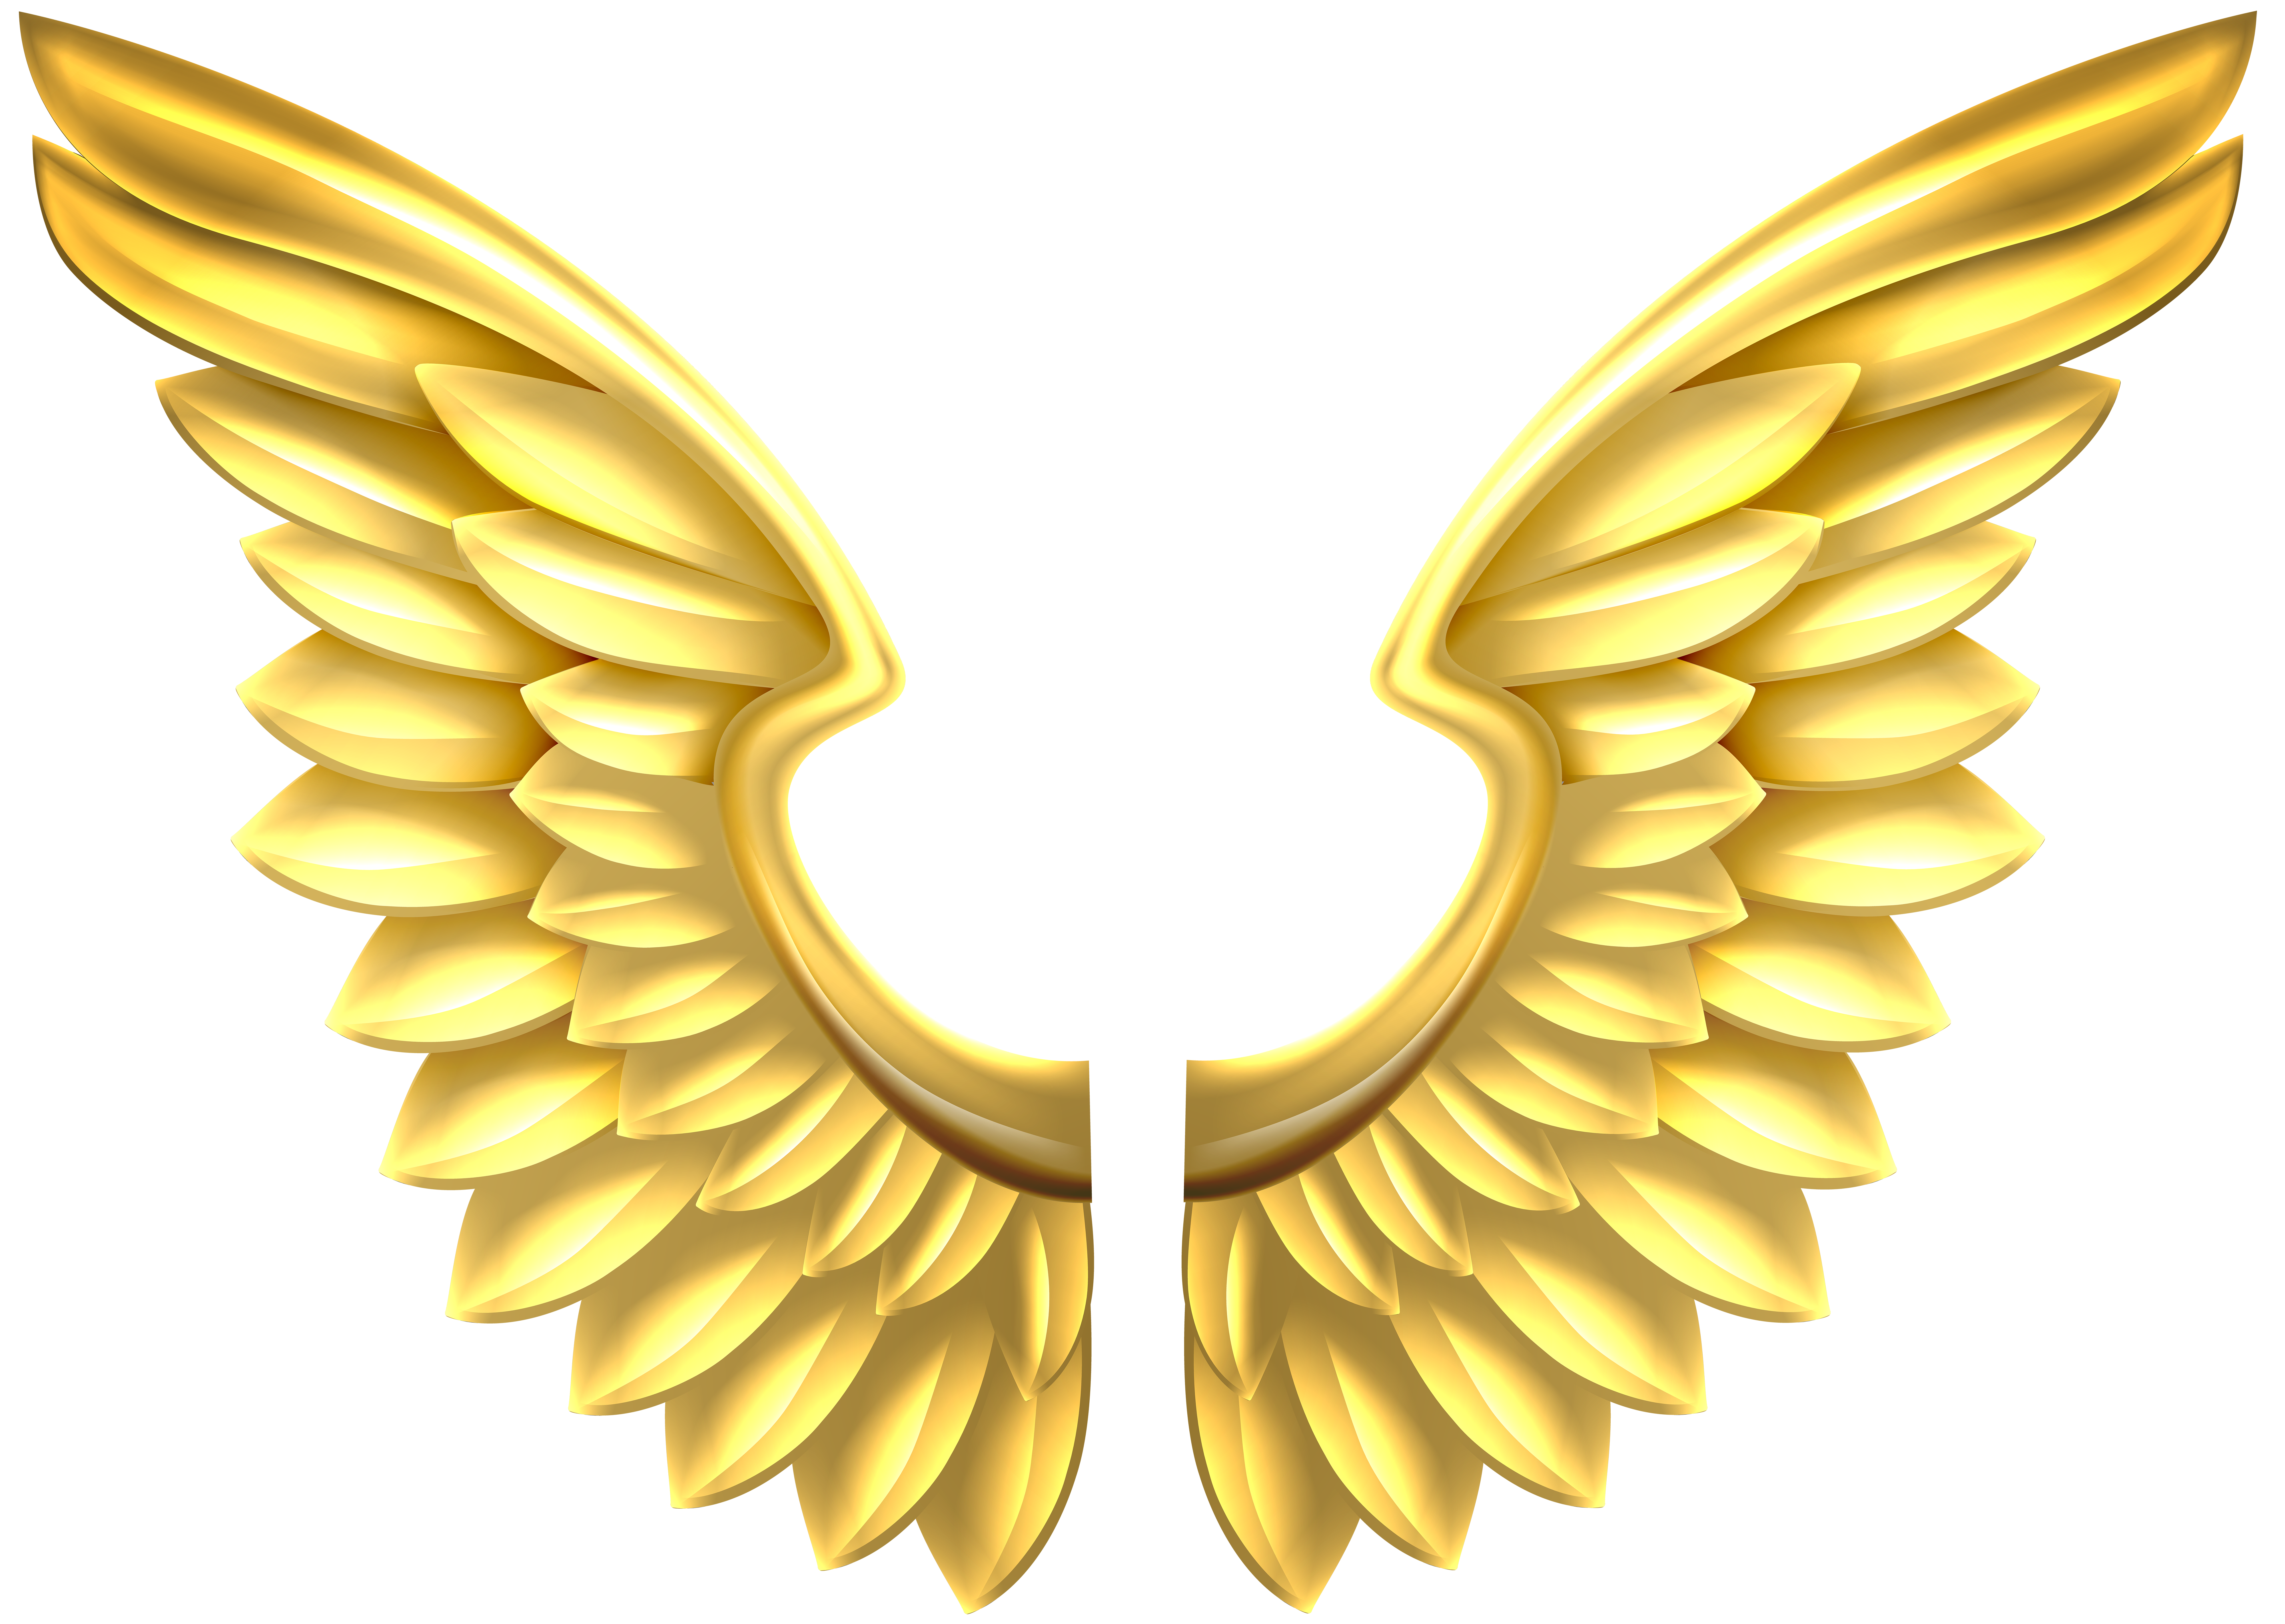 Gold angel wings png. Transparent clip art image